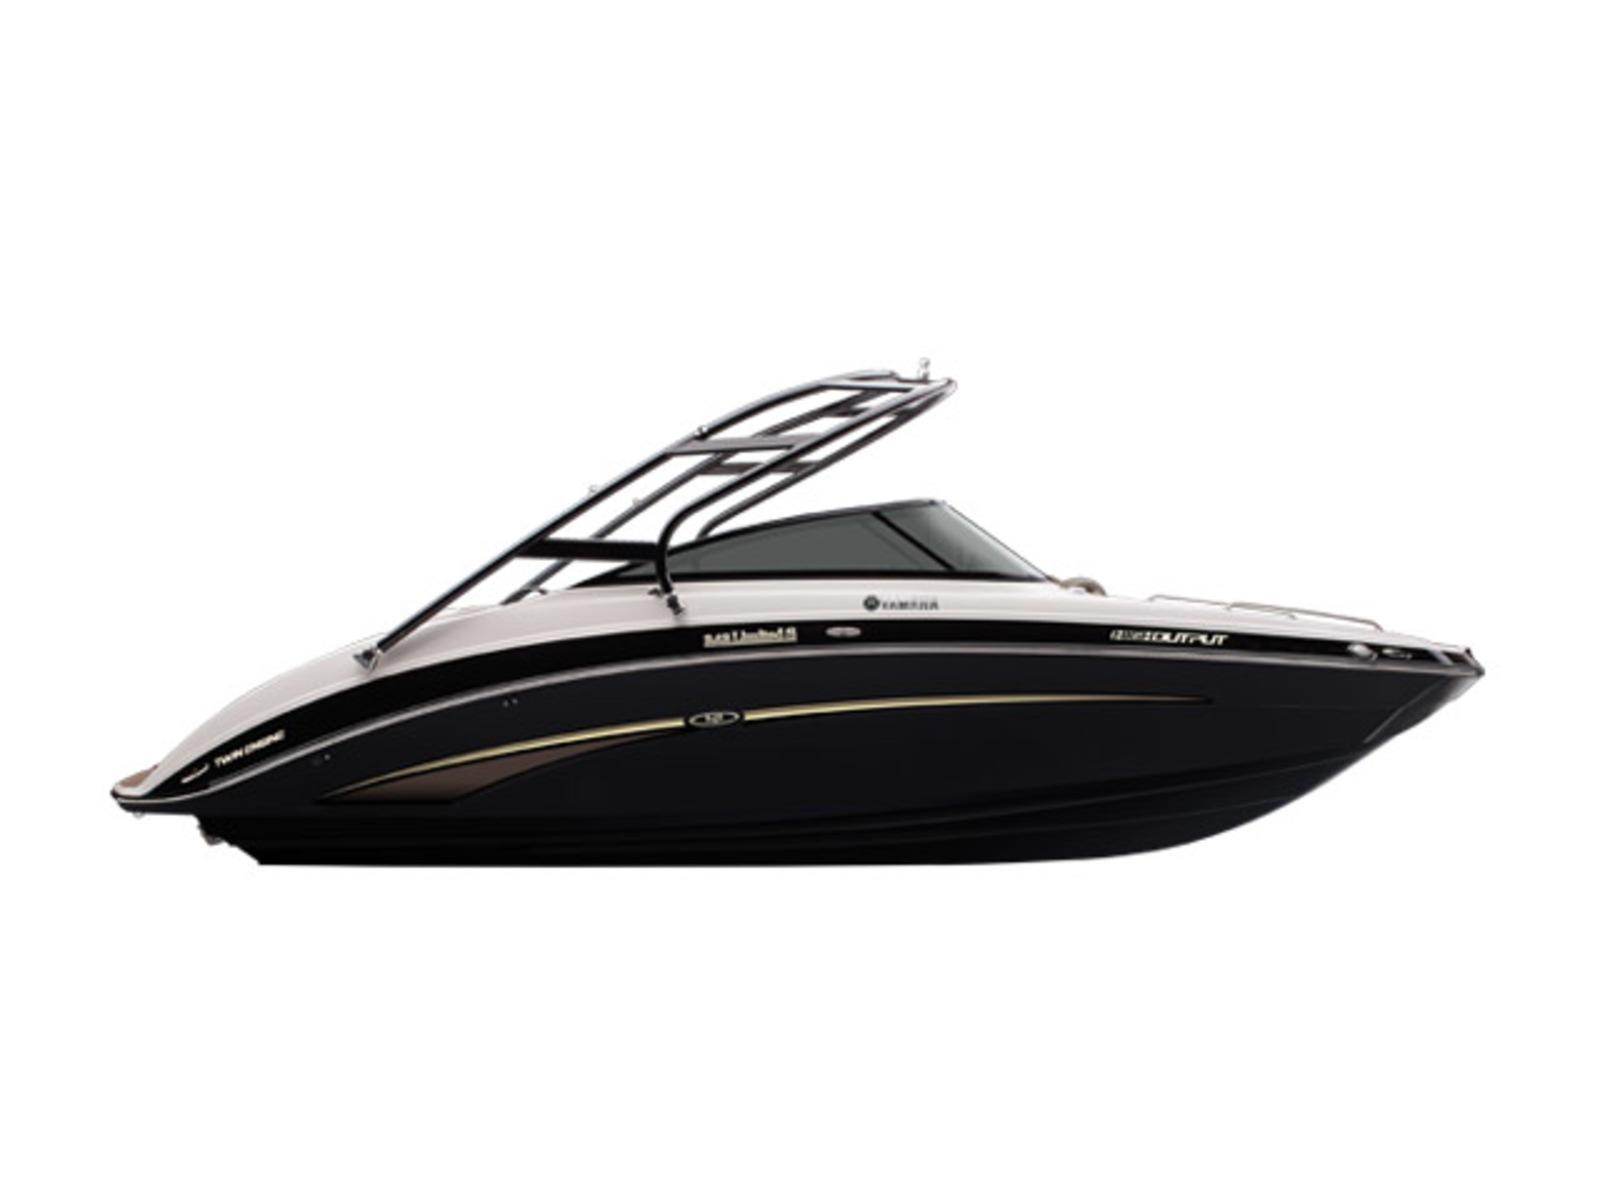 Once Driven Reviews >> 2014 Yamaha 242 Limited S Review - Top Speed